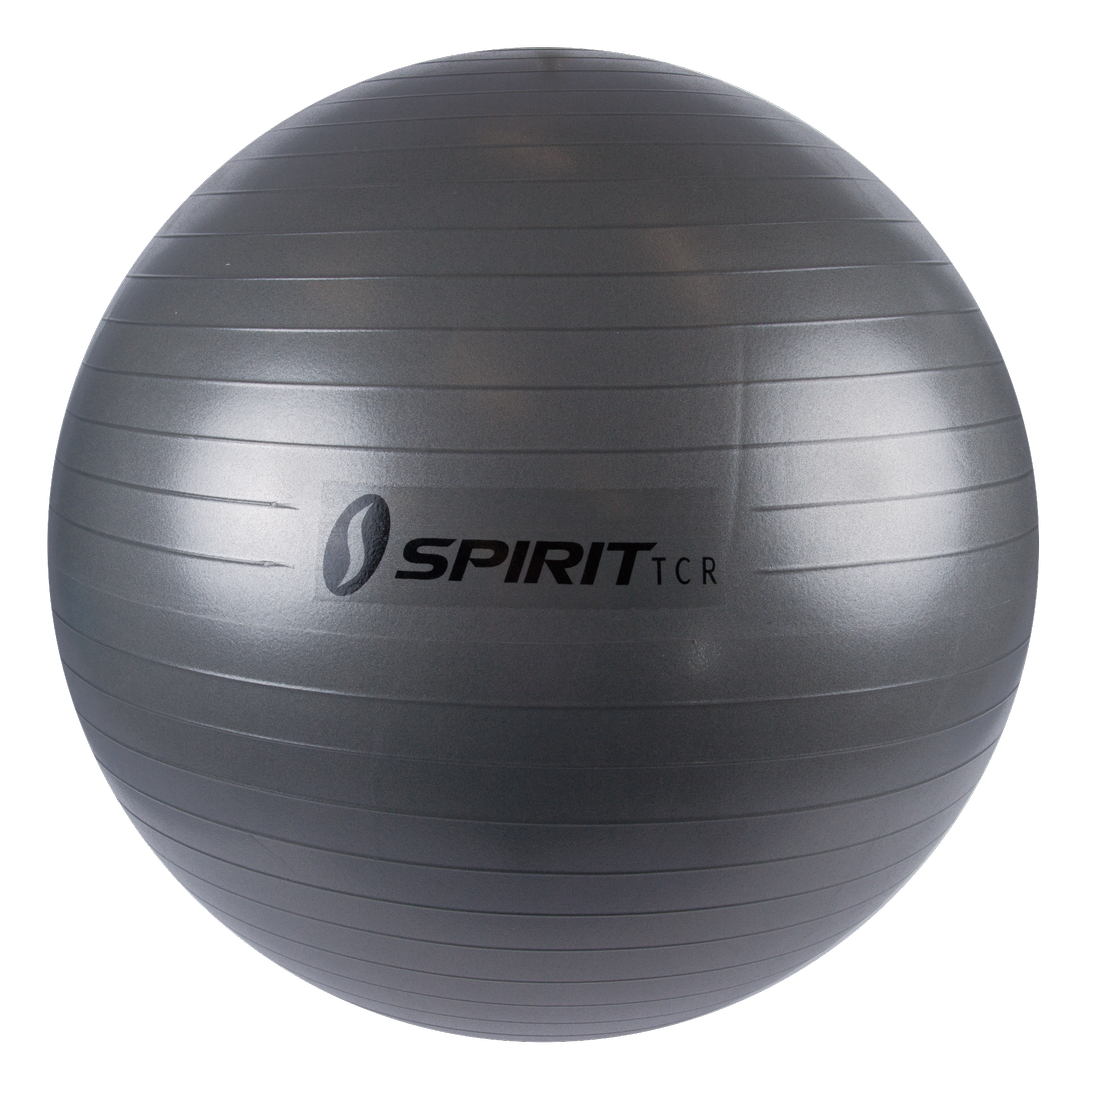 Spirit Exercise Ball O 75cm Gym Ball For Workouts Pilates Sitting Gymnastics Up To 136 Kg Campout